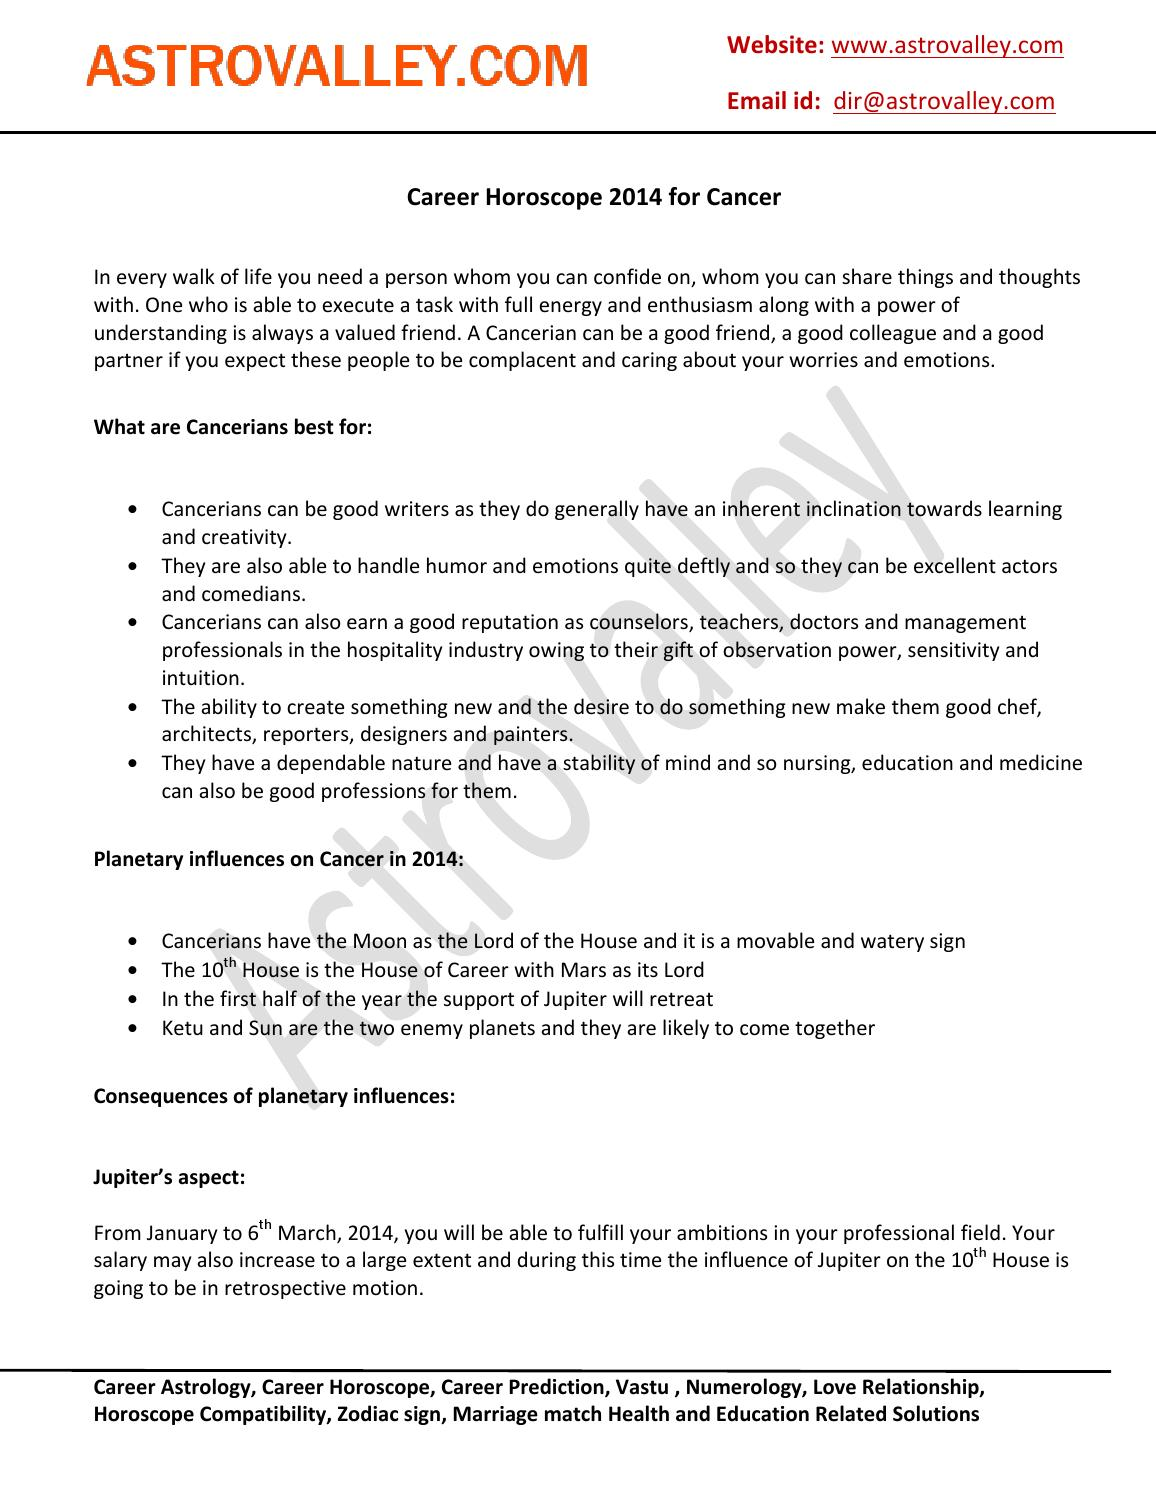 Career horoscope 2014 for cancer by Astrovalley  com - issuu